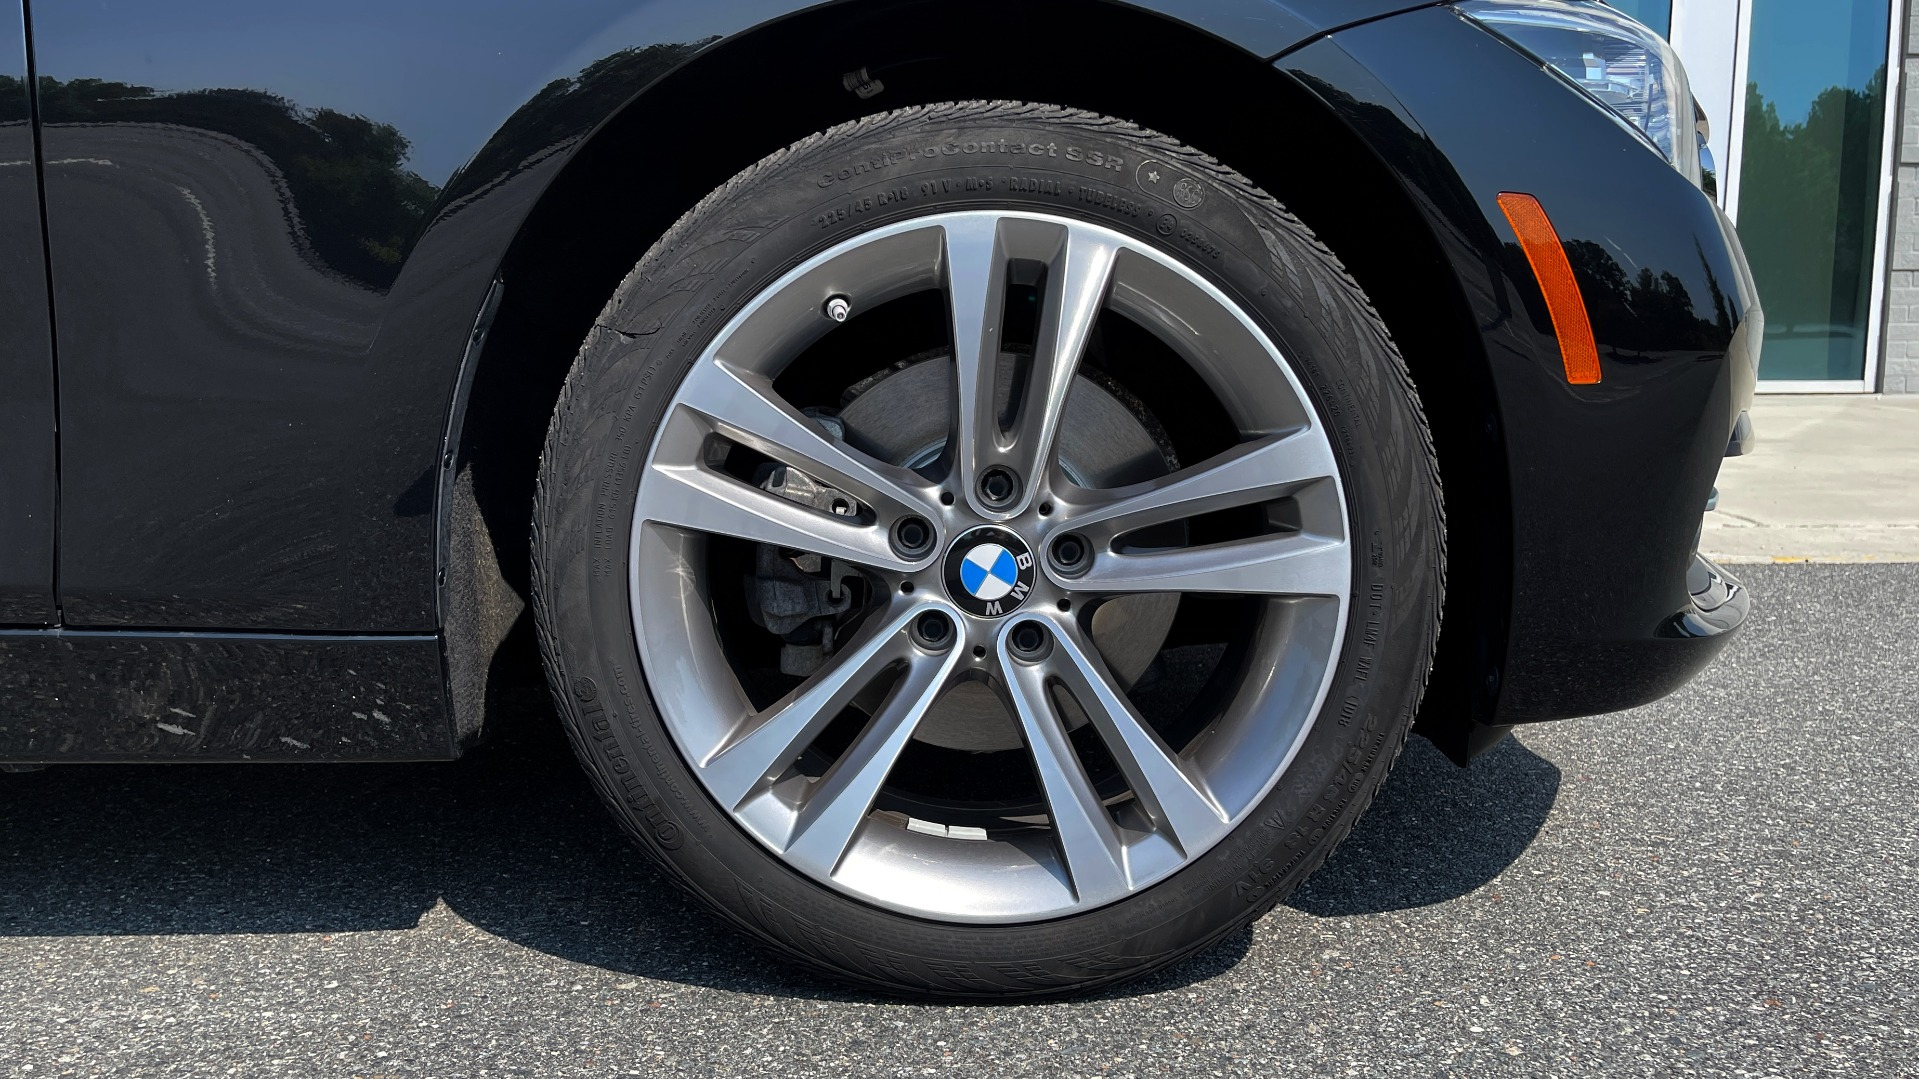 Used 2018 BMW 3 SERIES 330I XDRIVE / CONV PKG / SUNROOF / HTD STS / ABSD / REARVIEW for sale $30,695 at Formula Imports in Charlotte NC 28227 74